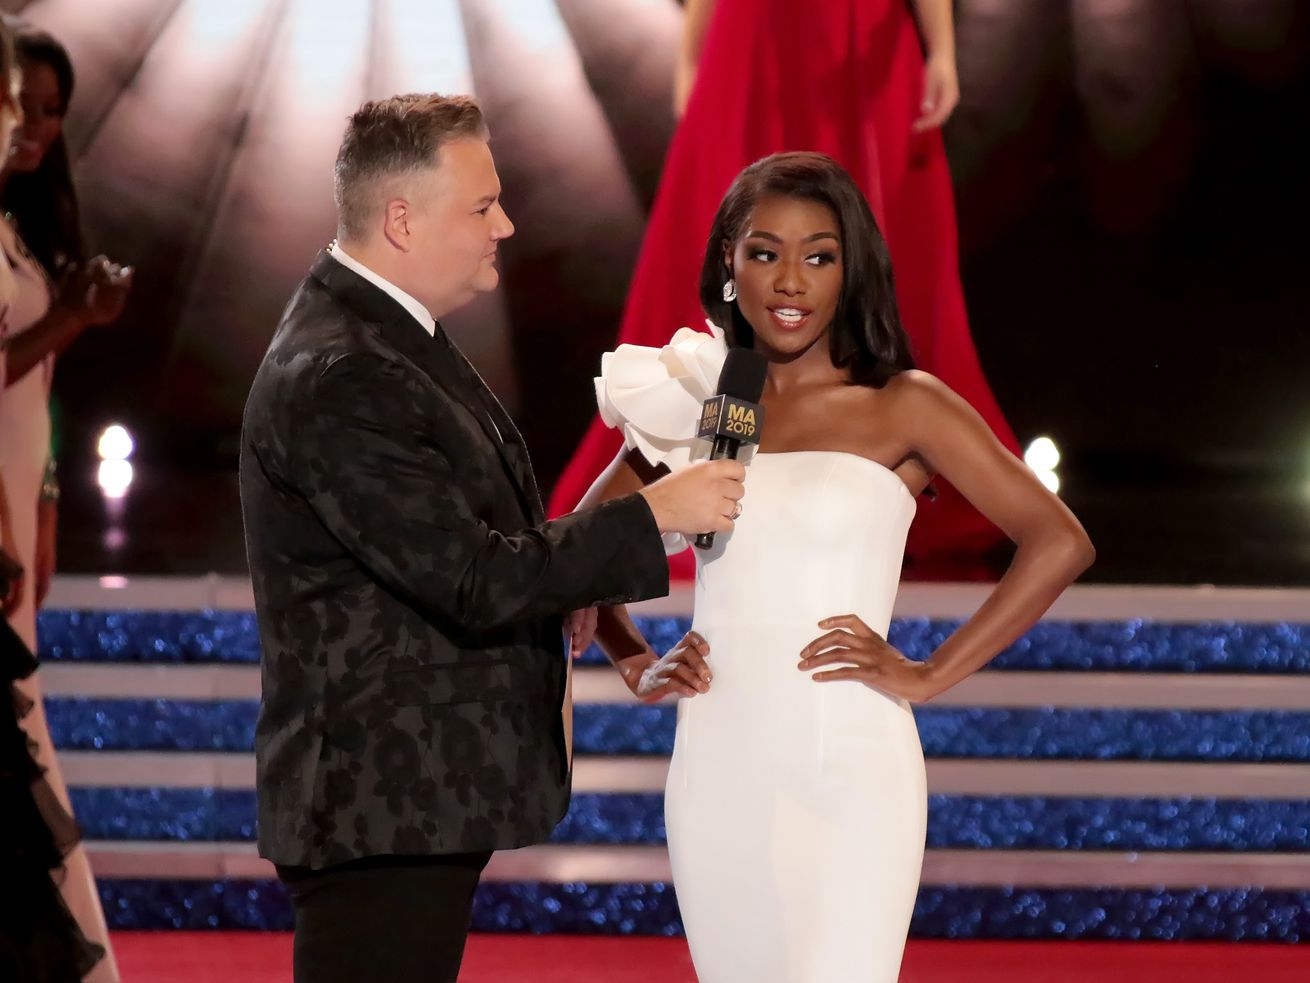 Ross Mathews with Nia Franklin, the eventual winner, during the Miss America 2019 finals.